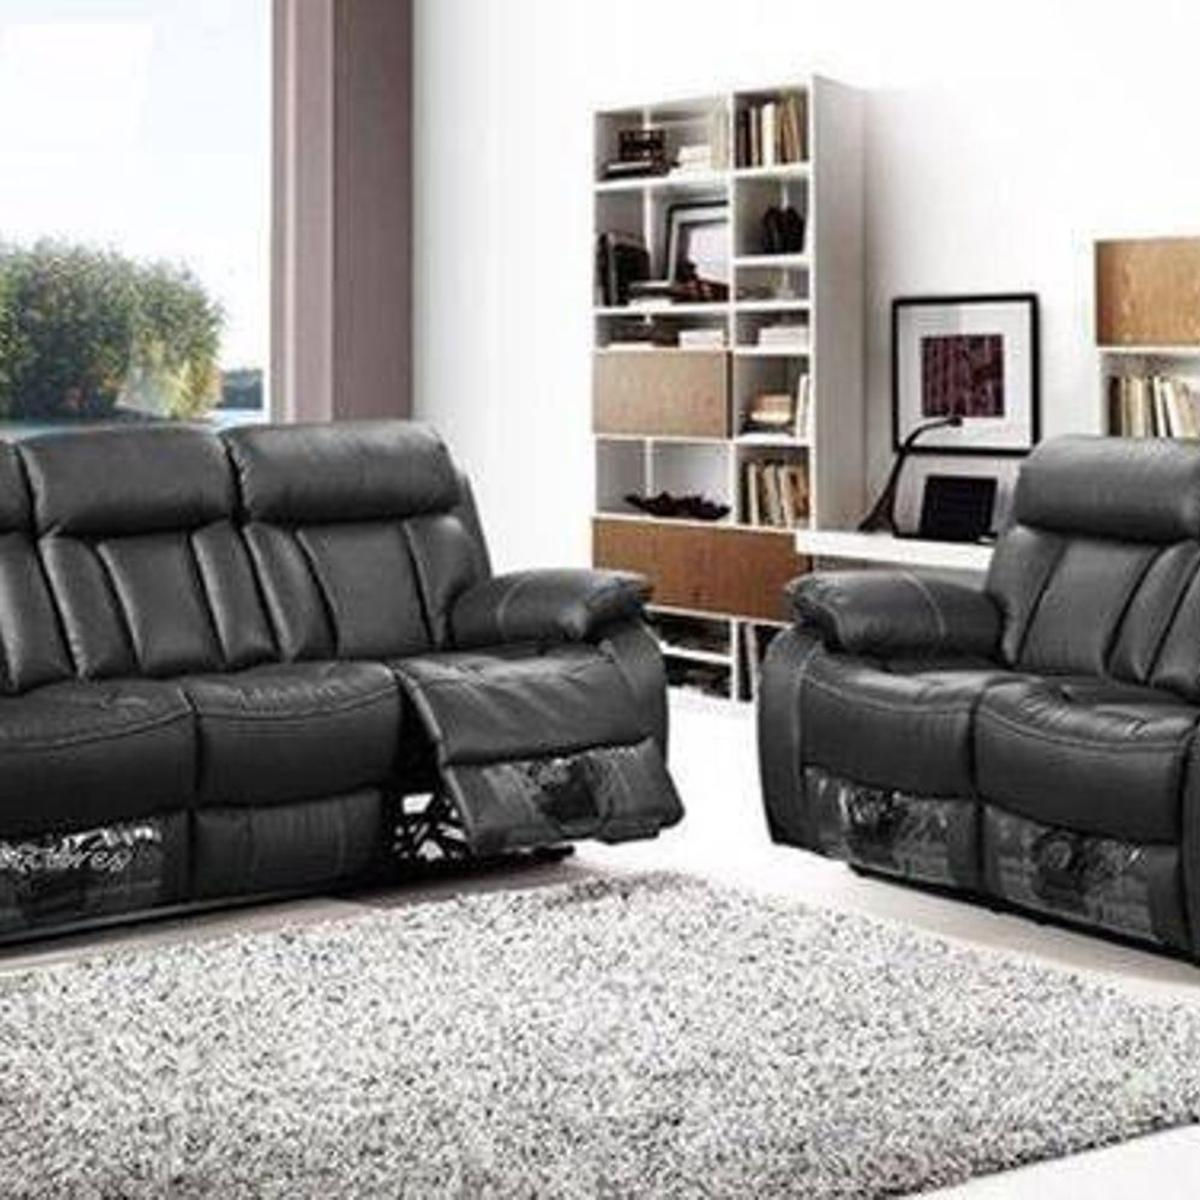 Real Soft Leather Sofas Recliners 3 2